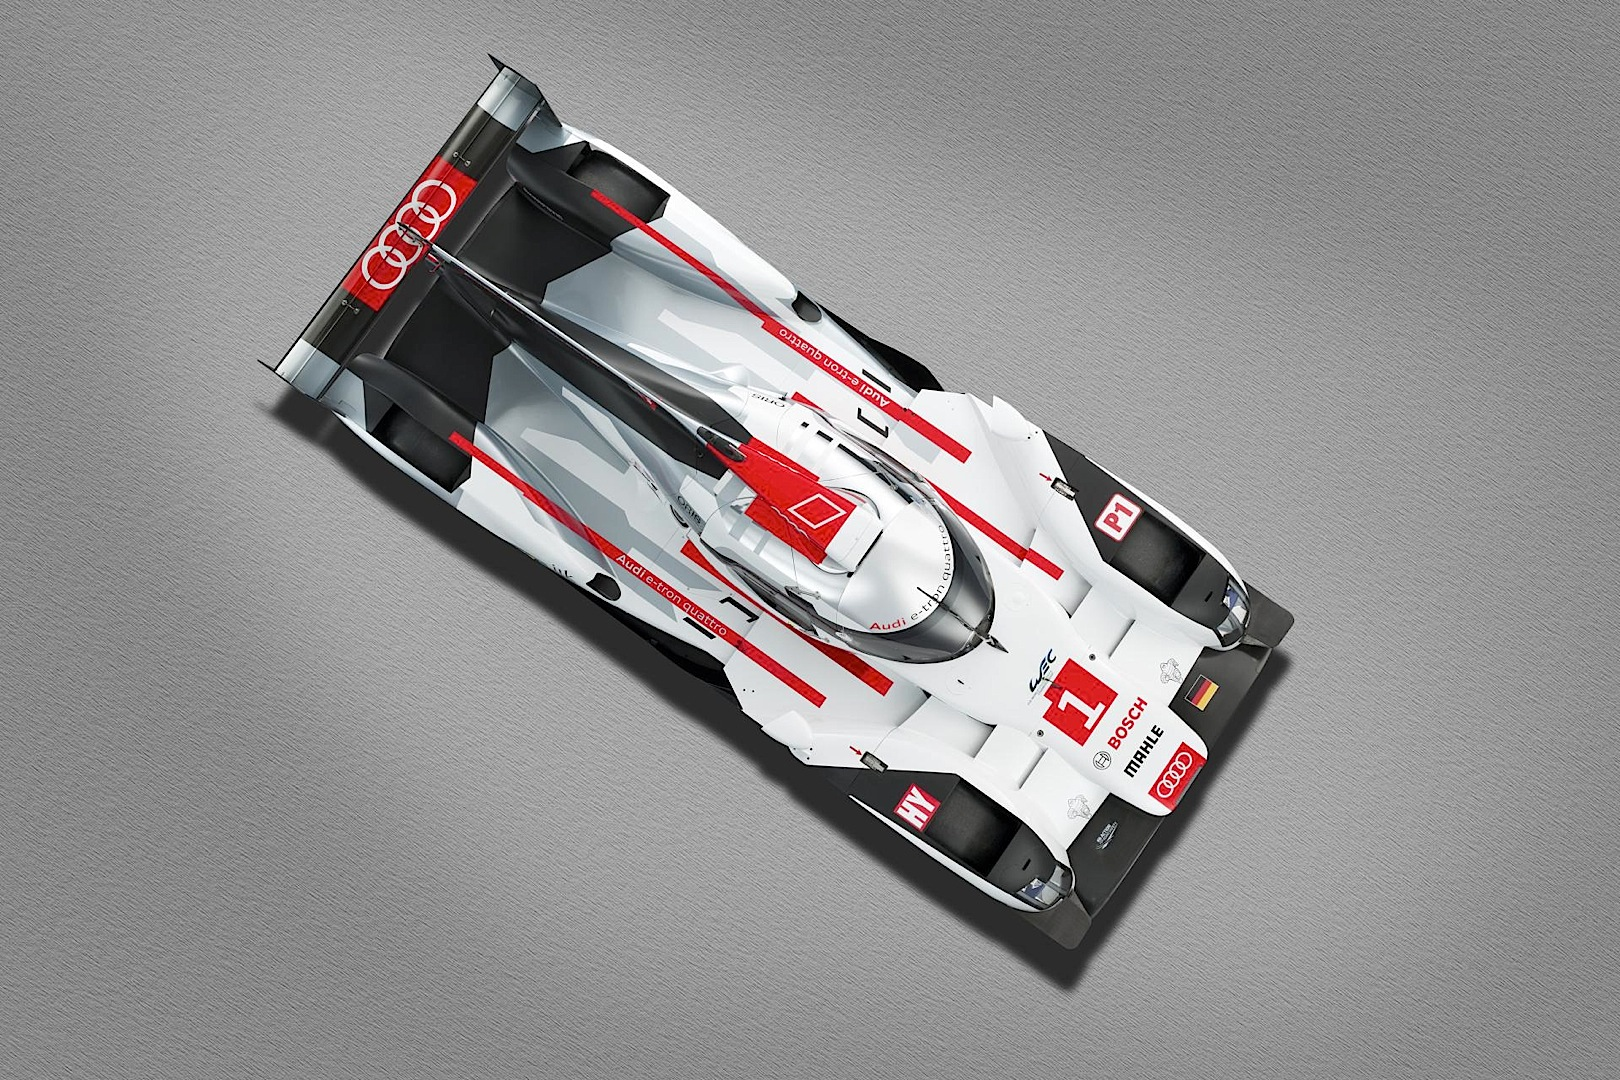 Audi R E Tron Quattro Gains New Livery Engine Update Video